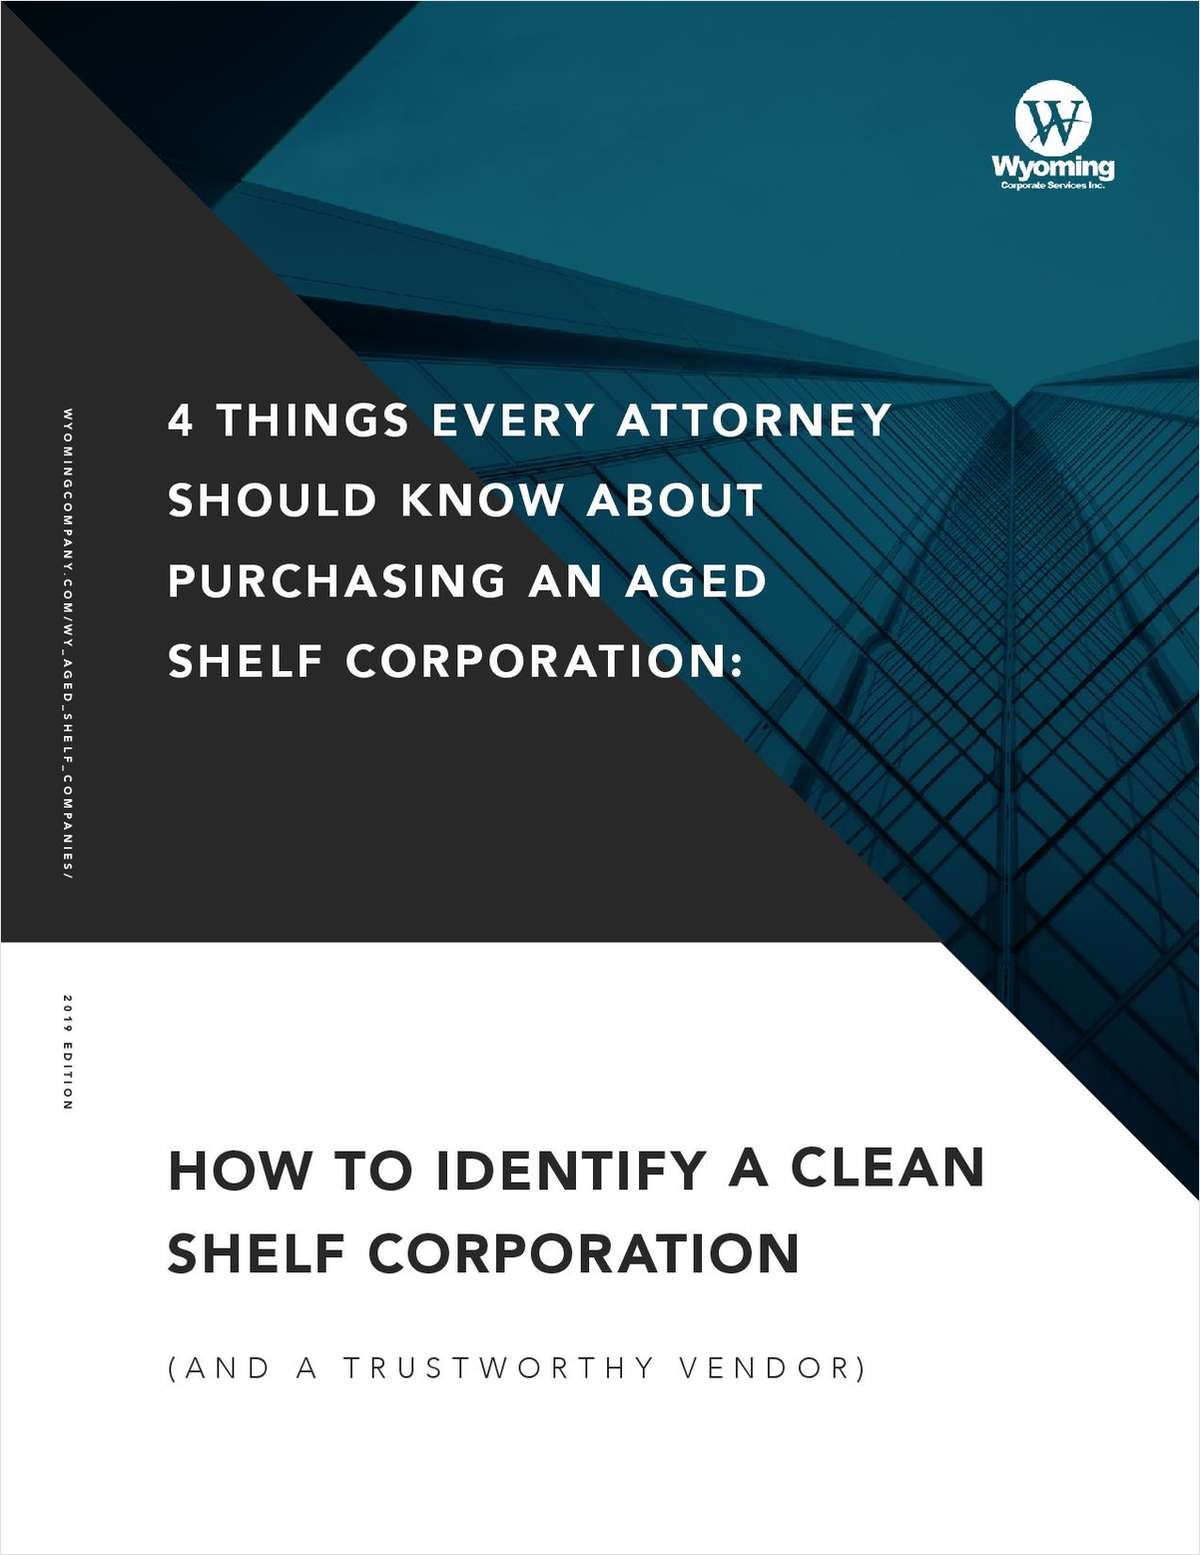 4 Things Every Attorney Should Know about Purchasing an Aged Shelf Corporation